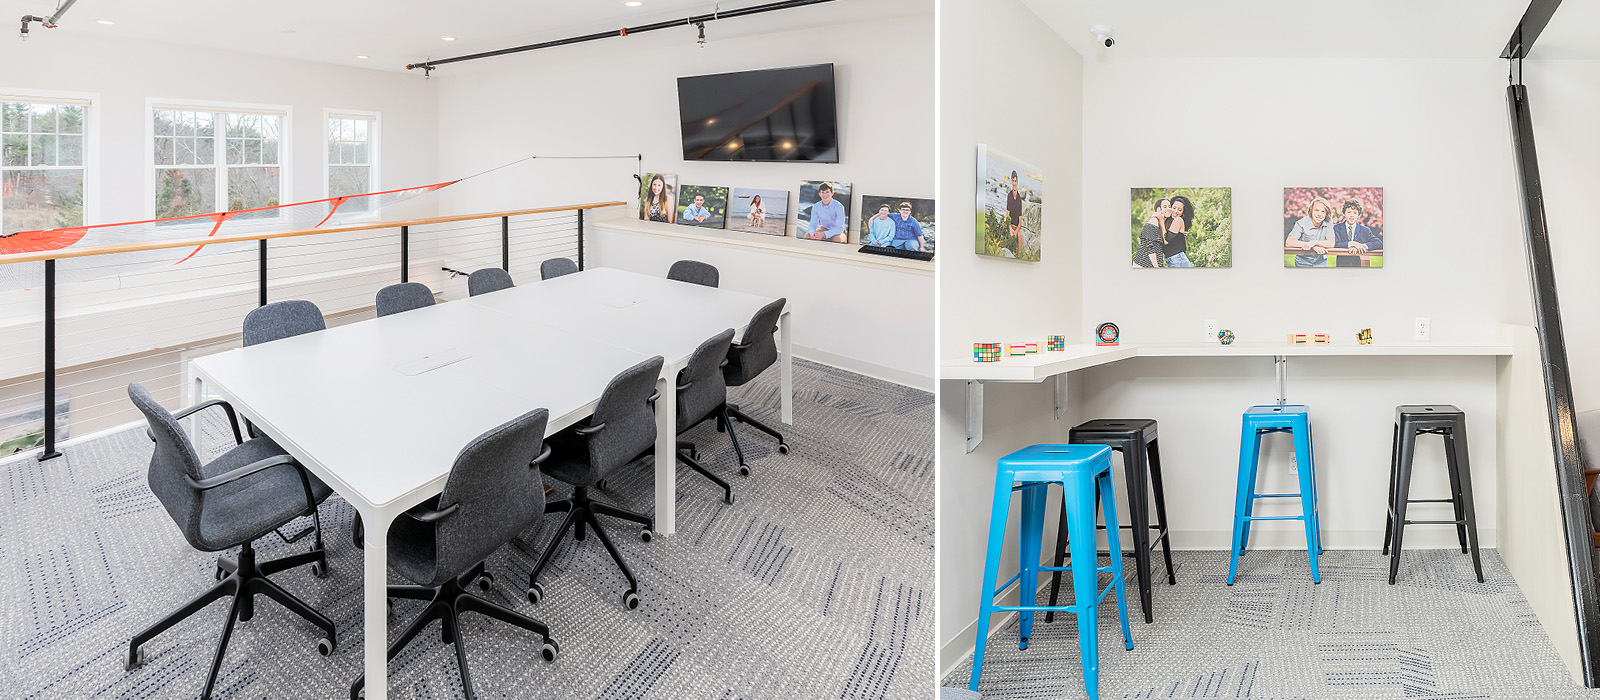 Forster Orthodontics conference room